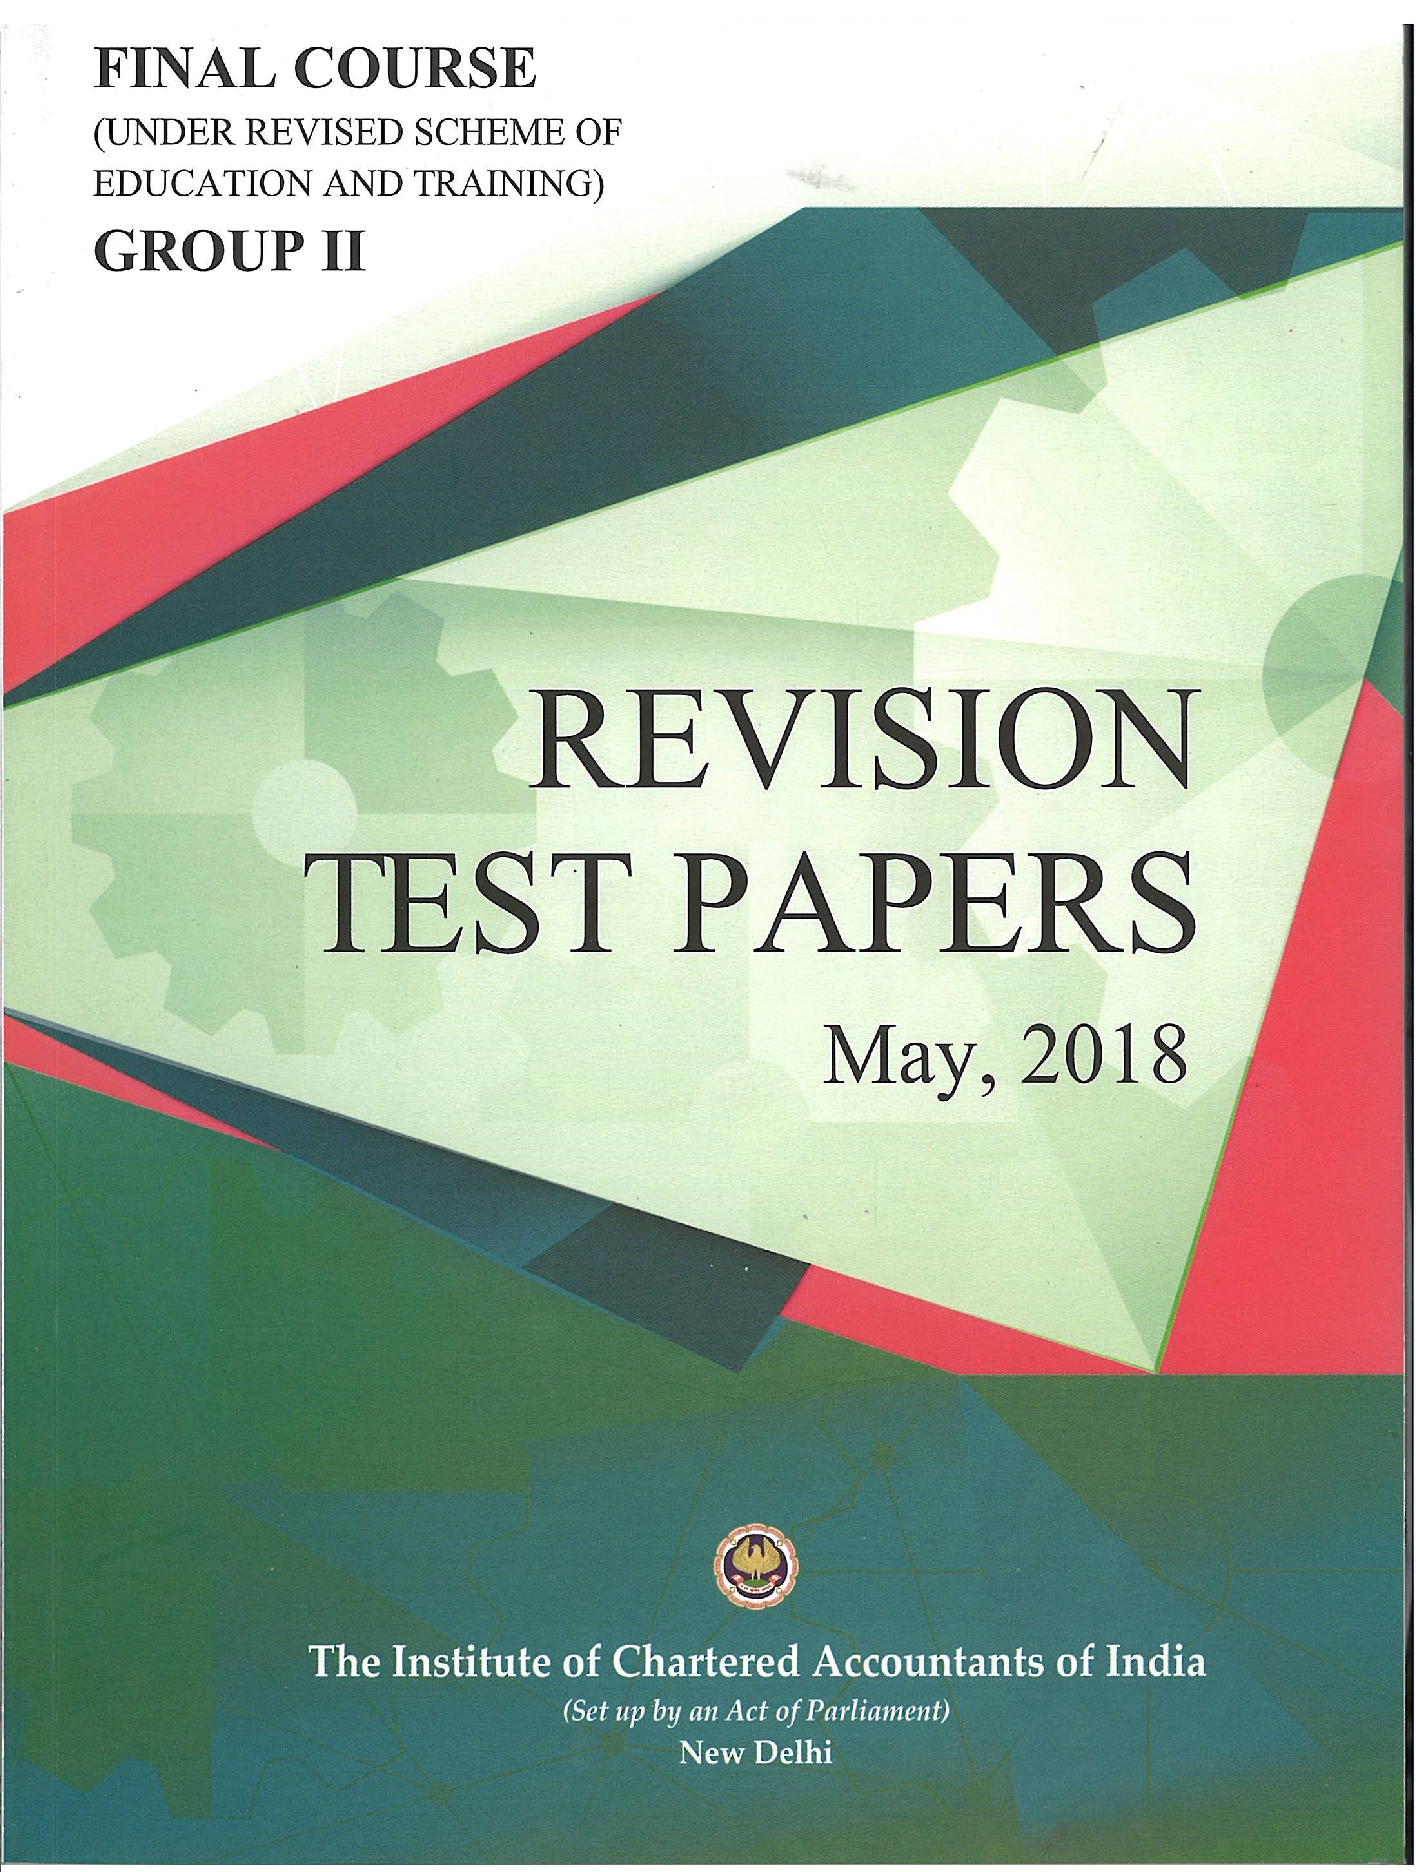 Final Course (Under New Scheme) Revision Test Papers Group - II May, 2018